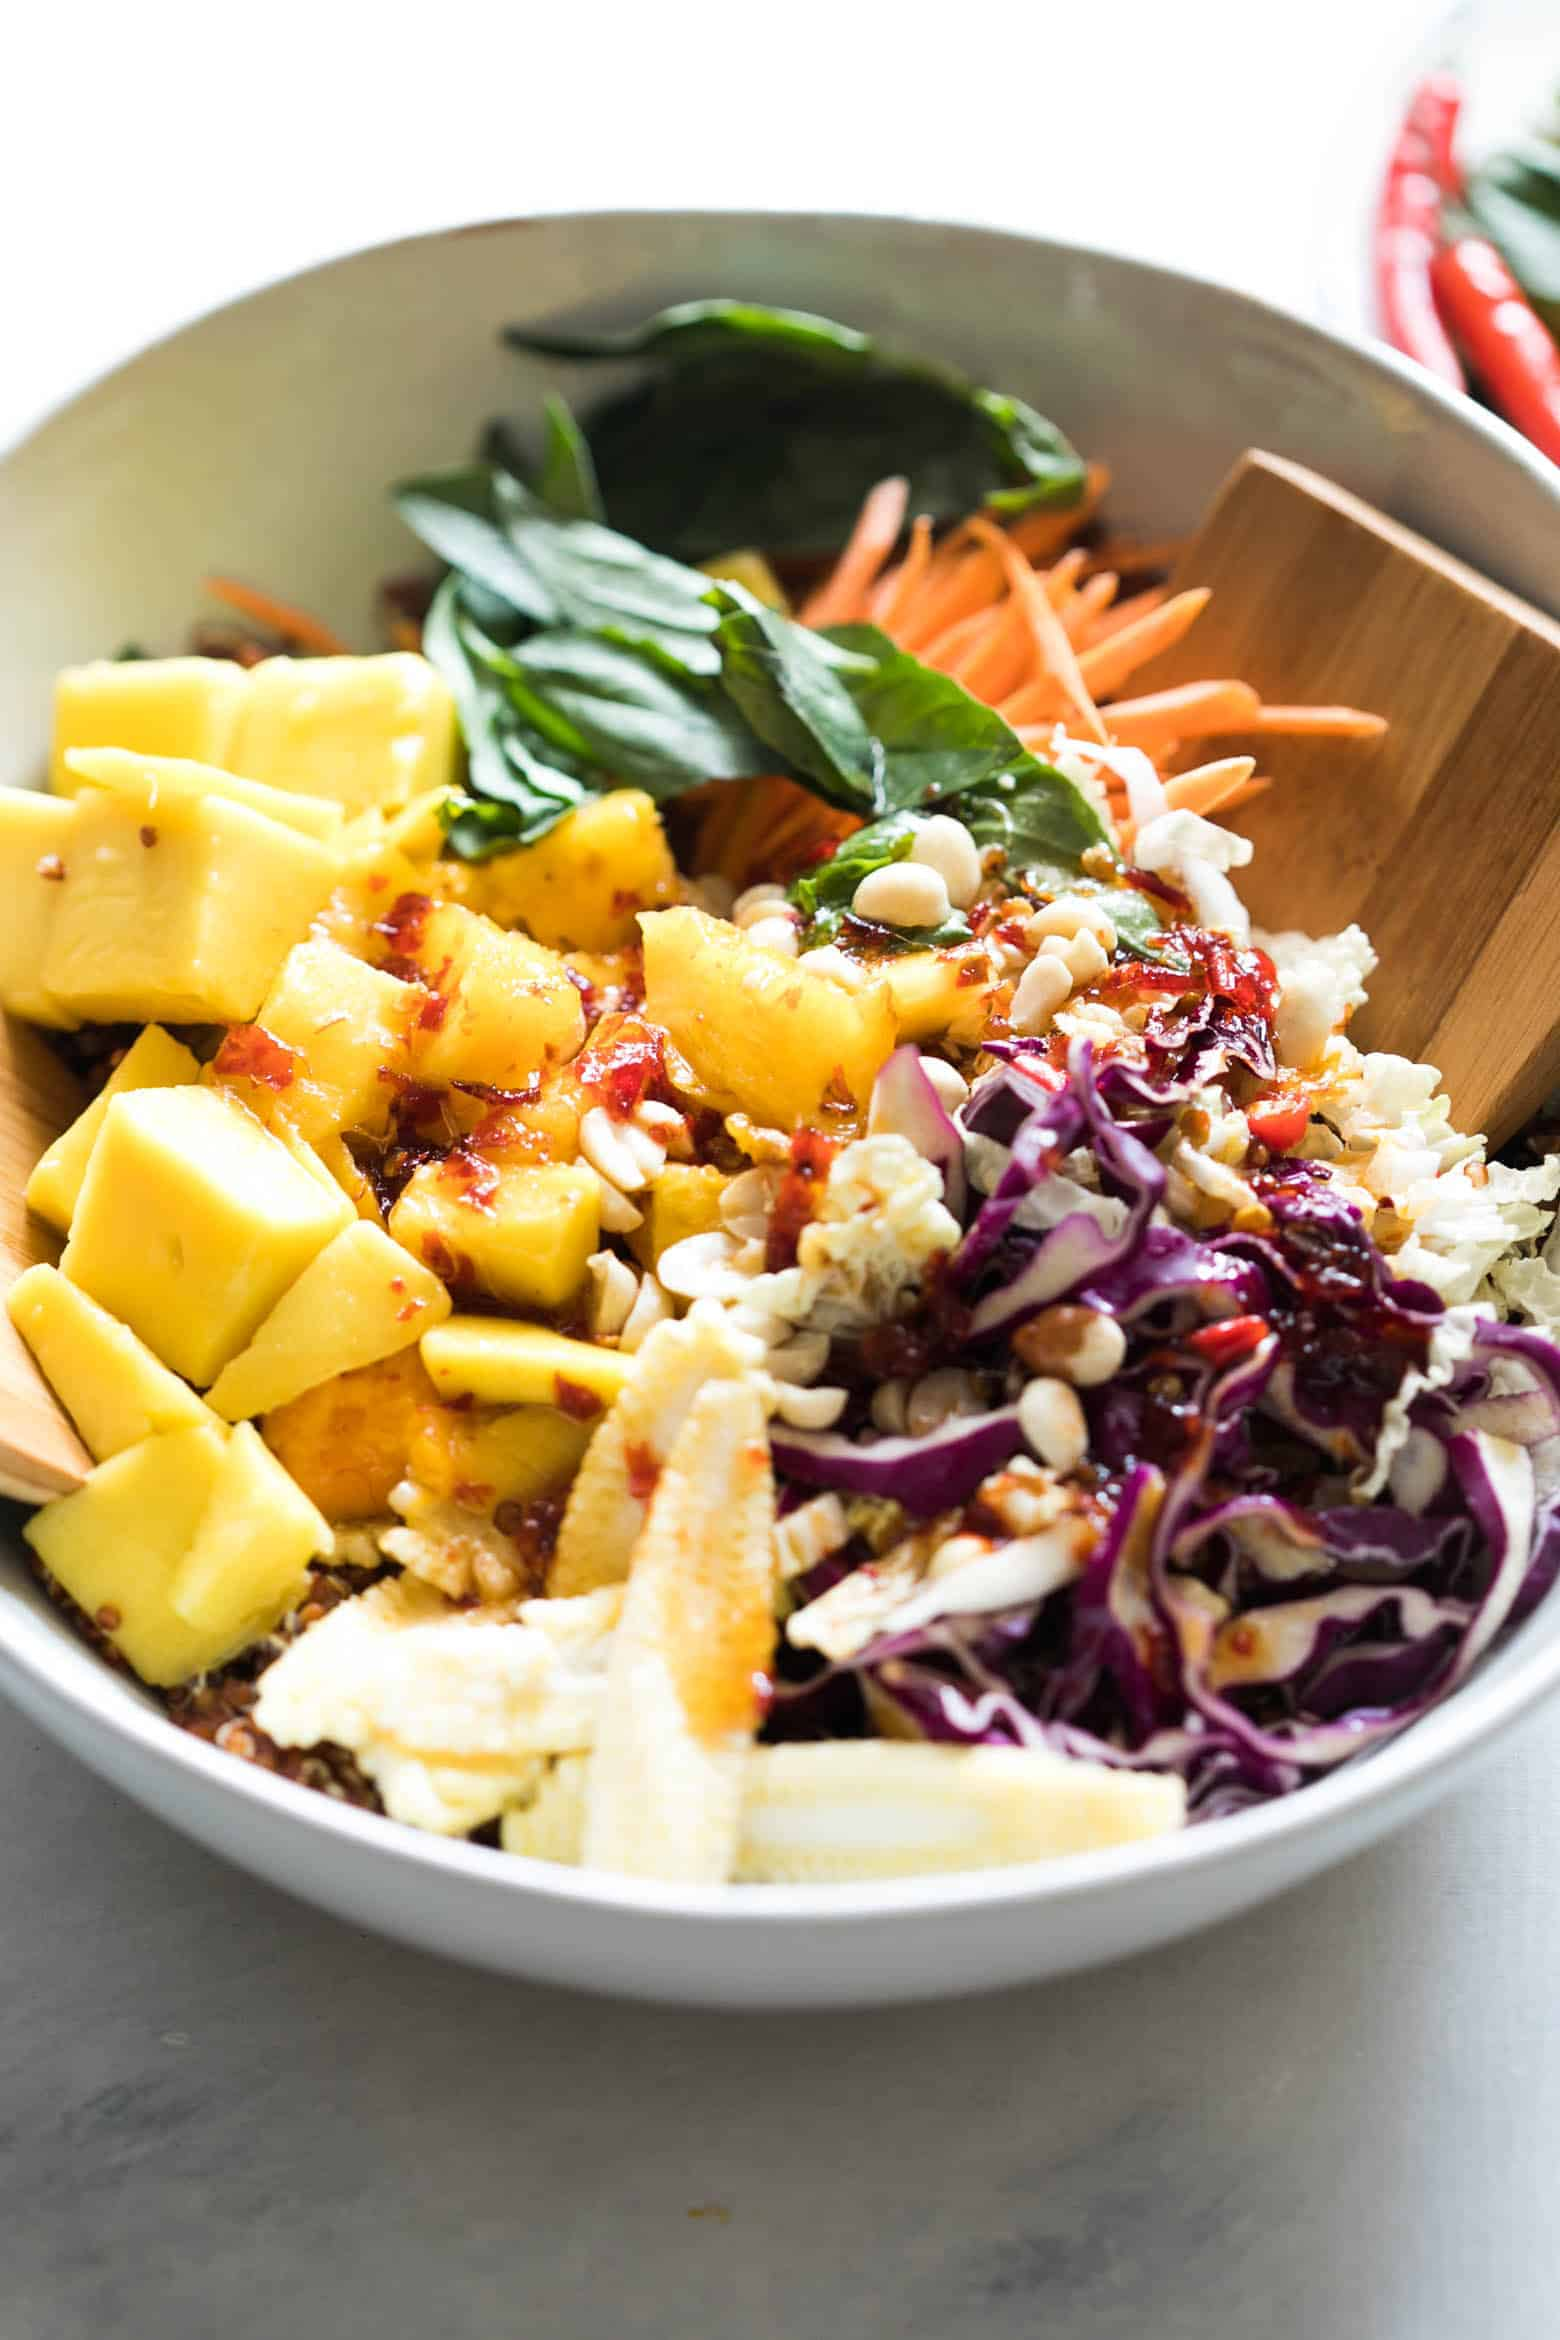 Super delicious Thai Peanut Mango Quinoa Salad which you can make ahead for potlucks and barbecues and also happens to be gluten free and vegan! Comes with a finger licking sweet and spicy sambal dressing that's different from the regular peanut dressing.